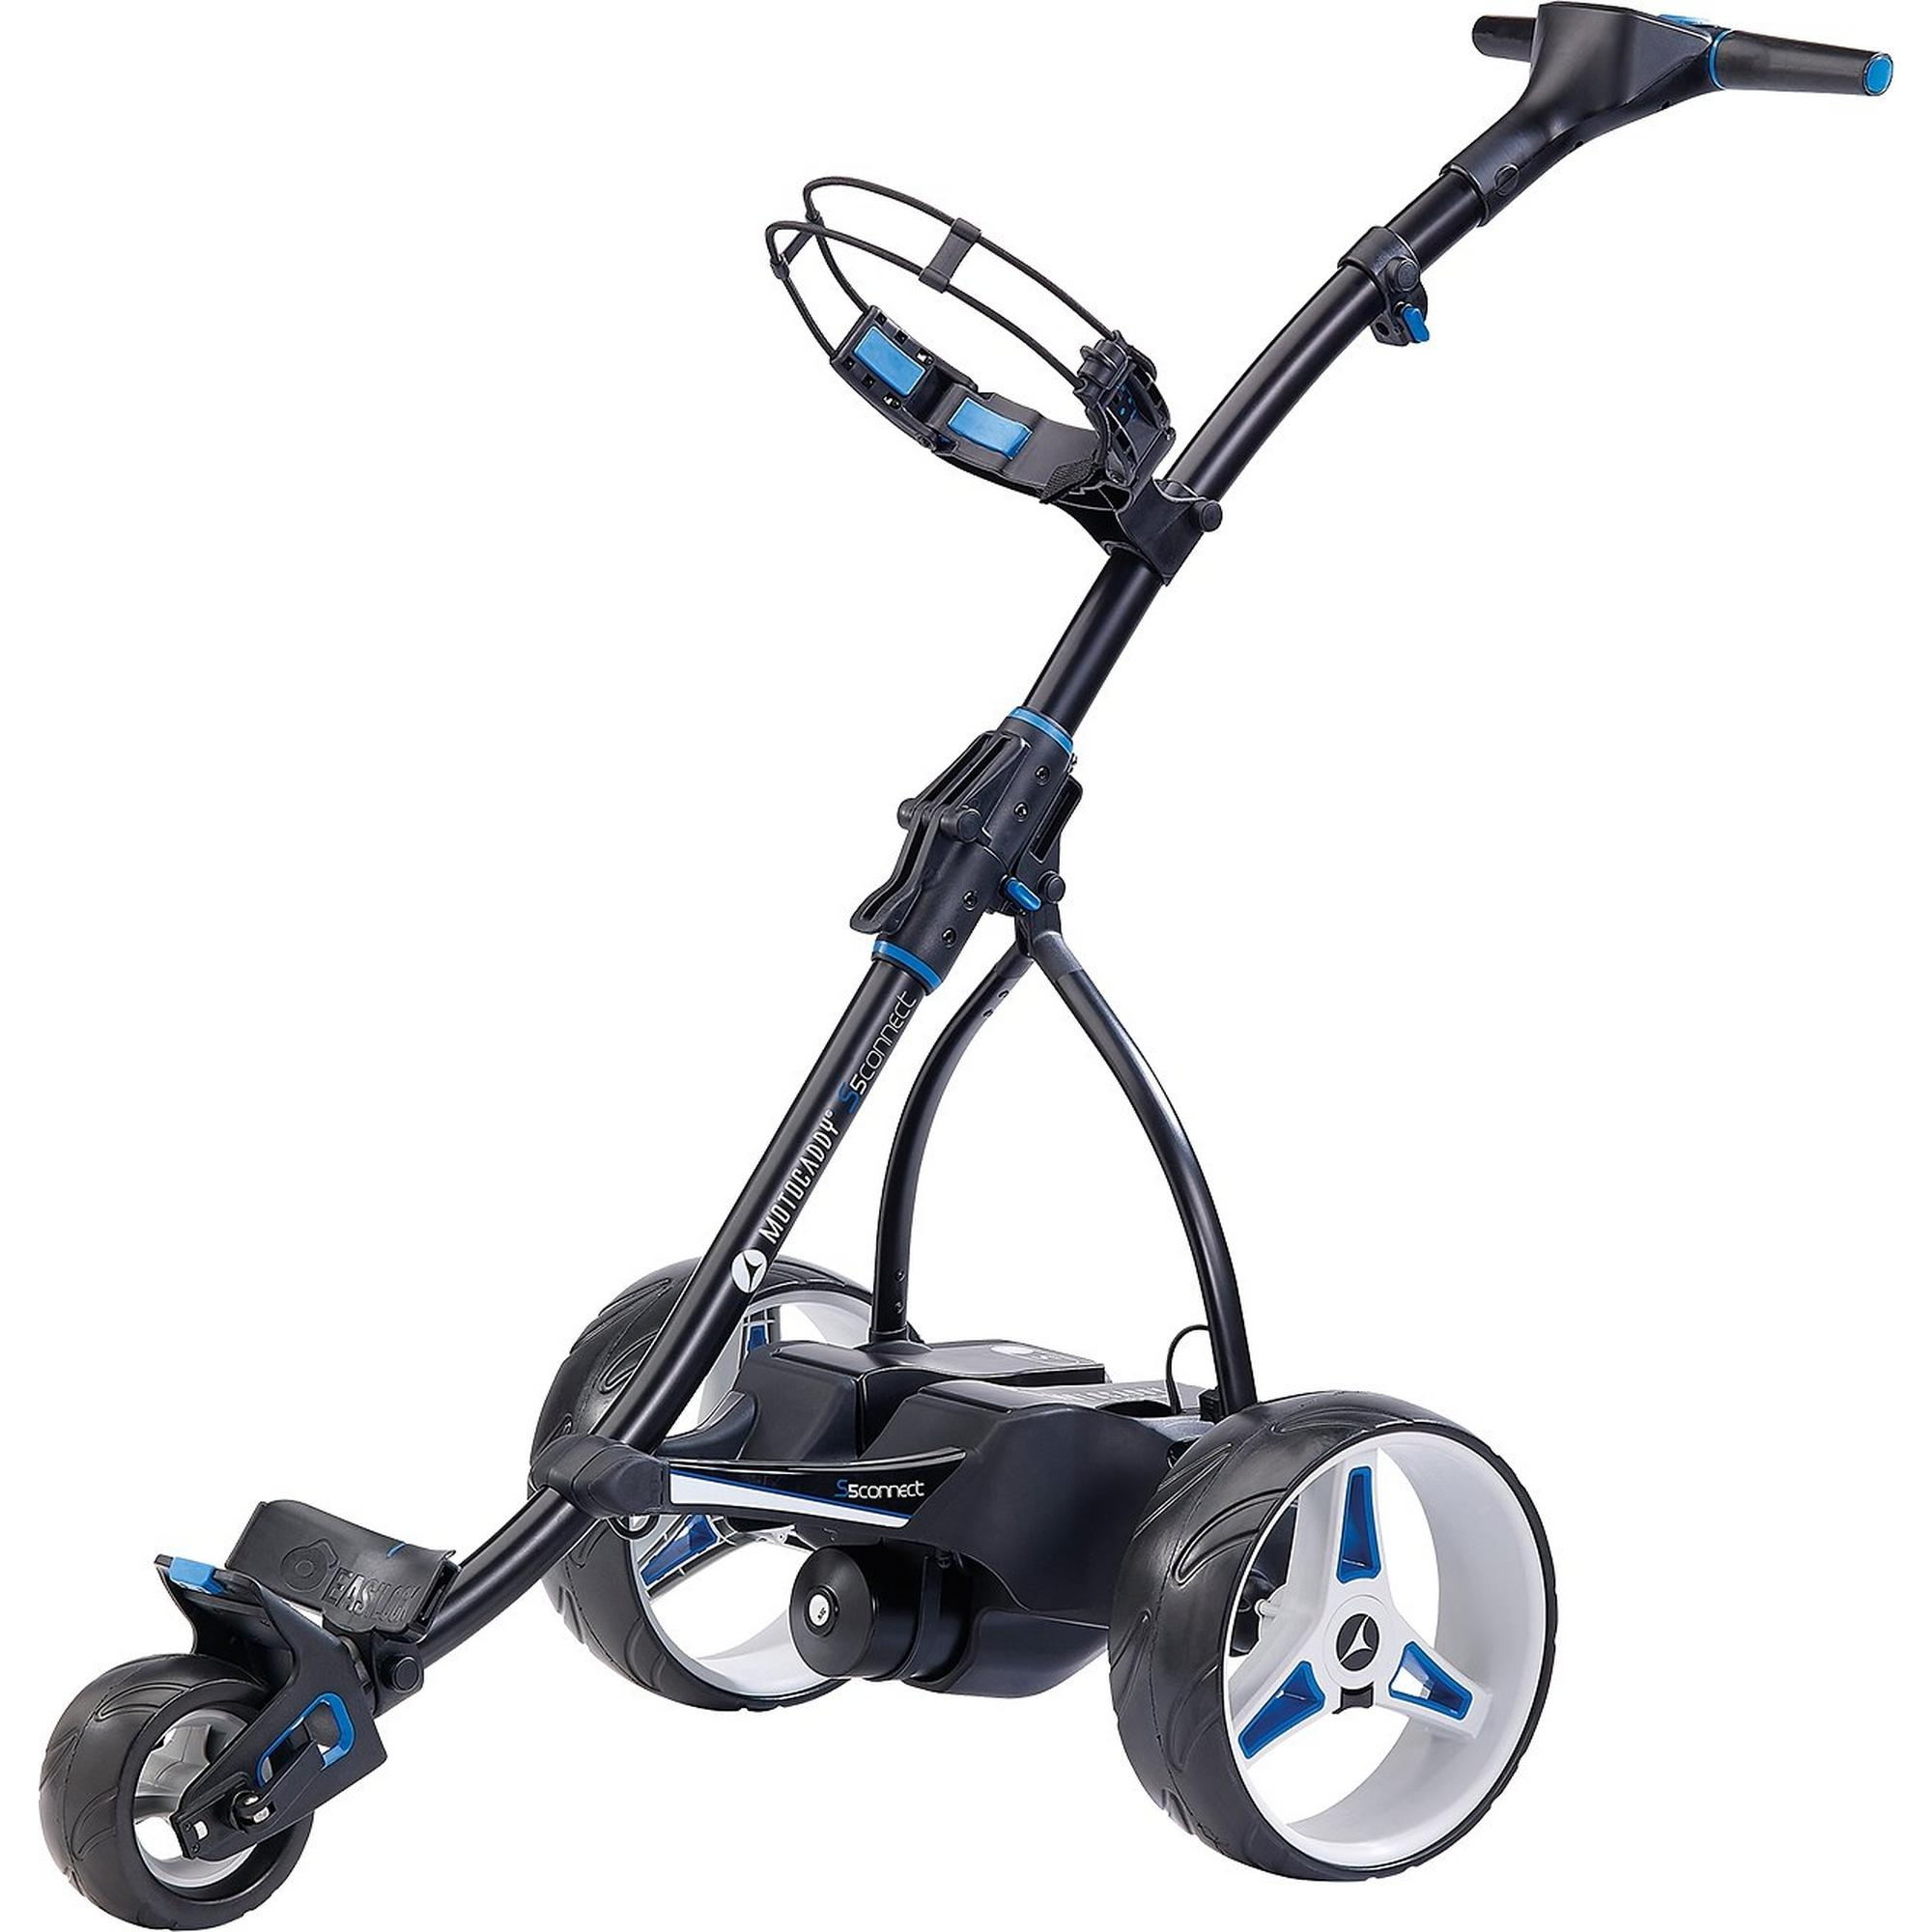 S5 Connect GPS Electric Cart